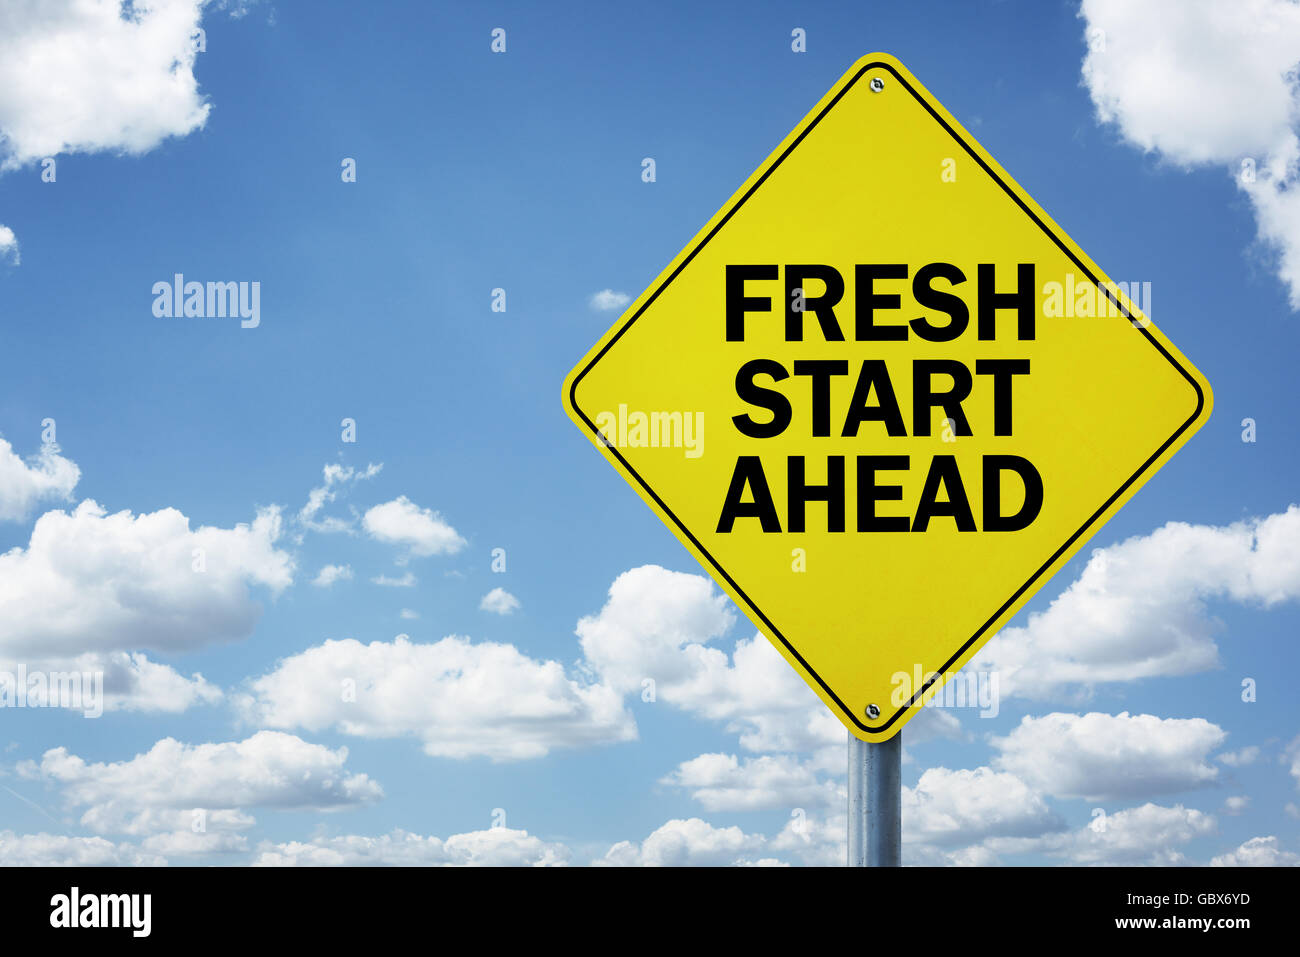 Fresh start ahead road sign - Stock Image